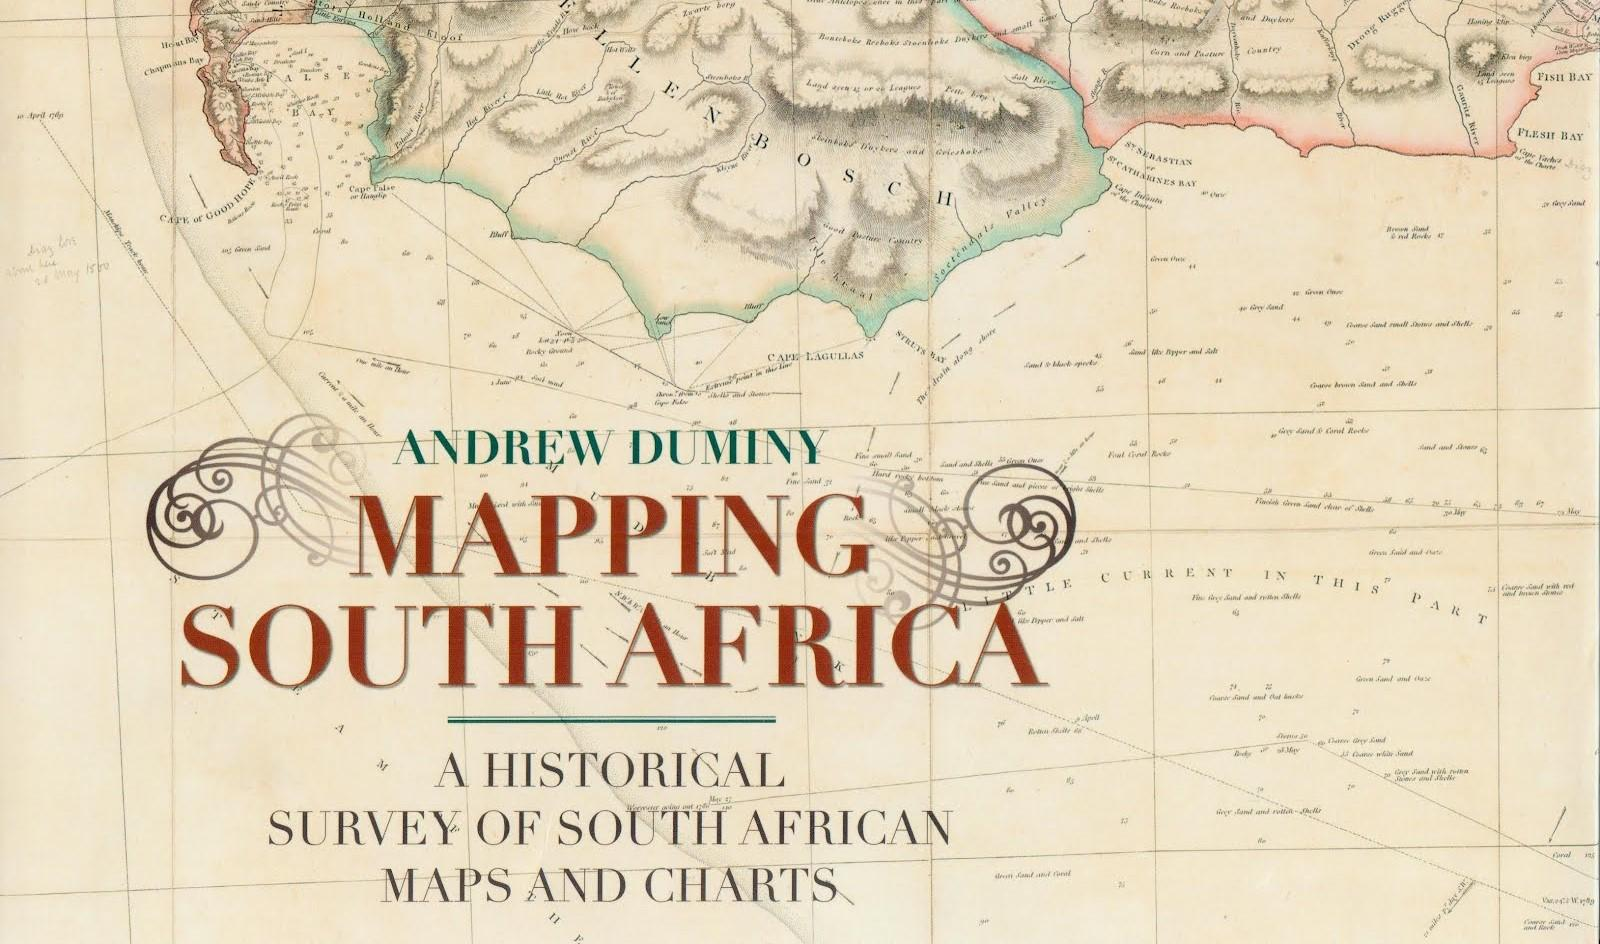 get this book if you collect south african maps